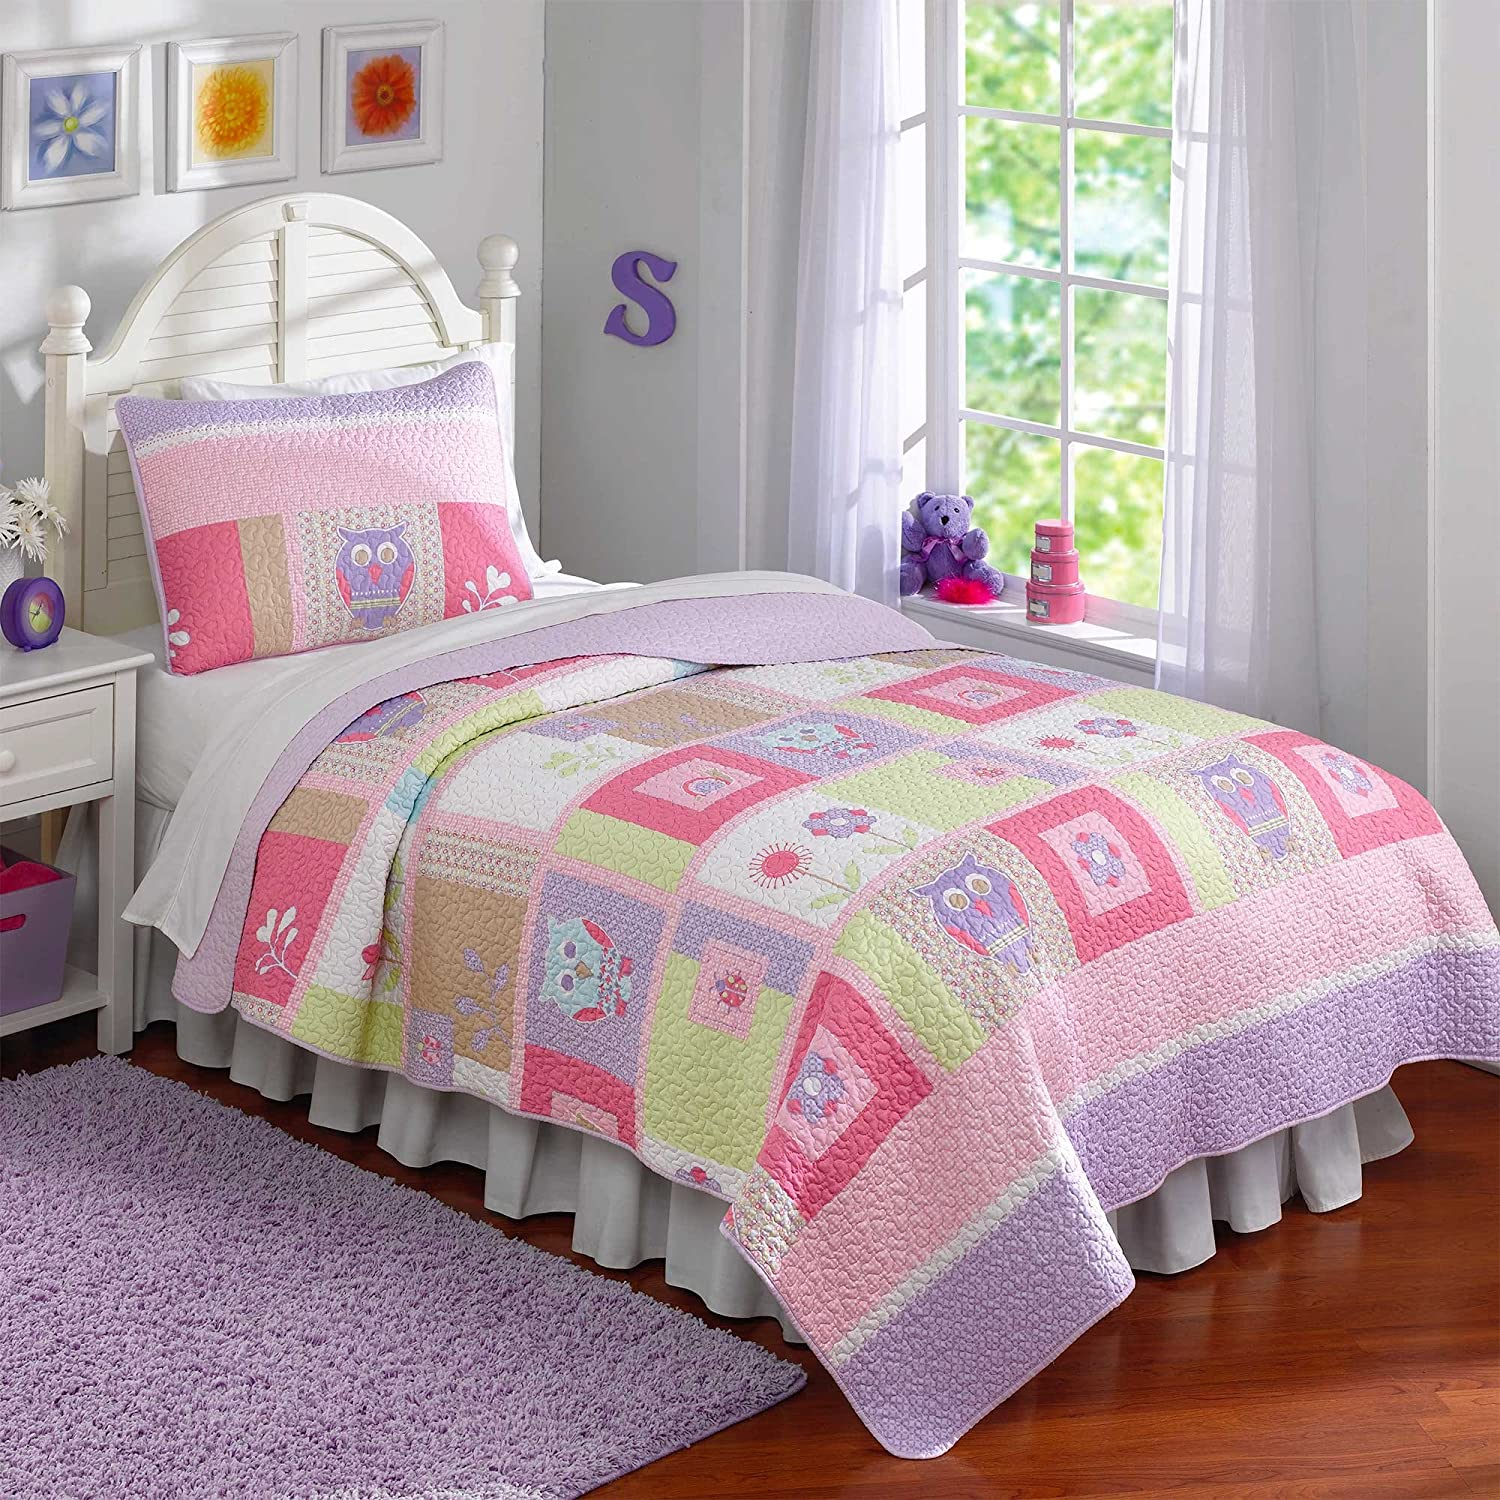 tan pristine girl green toddler queen peach ensembles teen cowhide bedding fun twin houndstooth pink designer amazon eht rc full mint baby coral light sheets and set uk bed target girls glomorous curtains sets